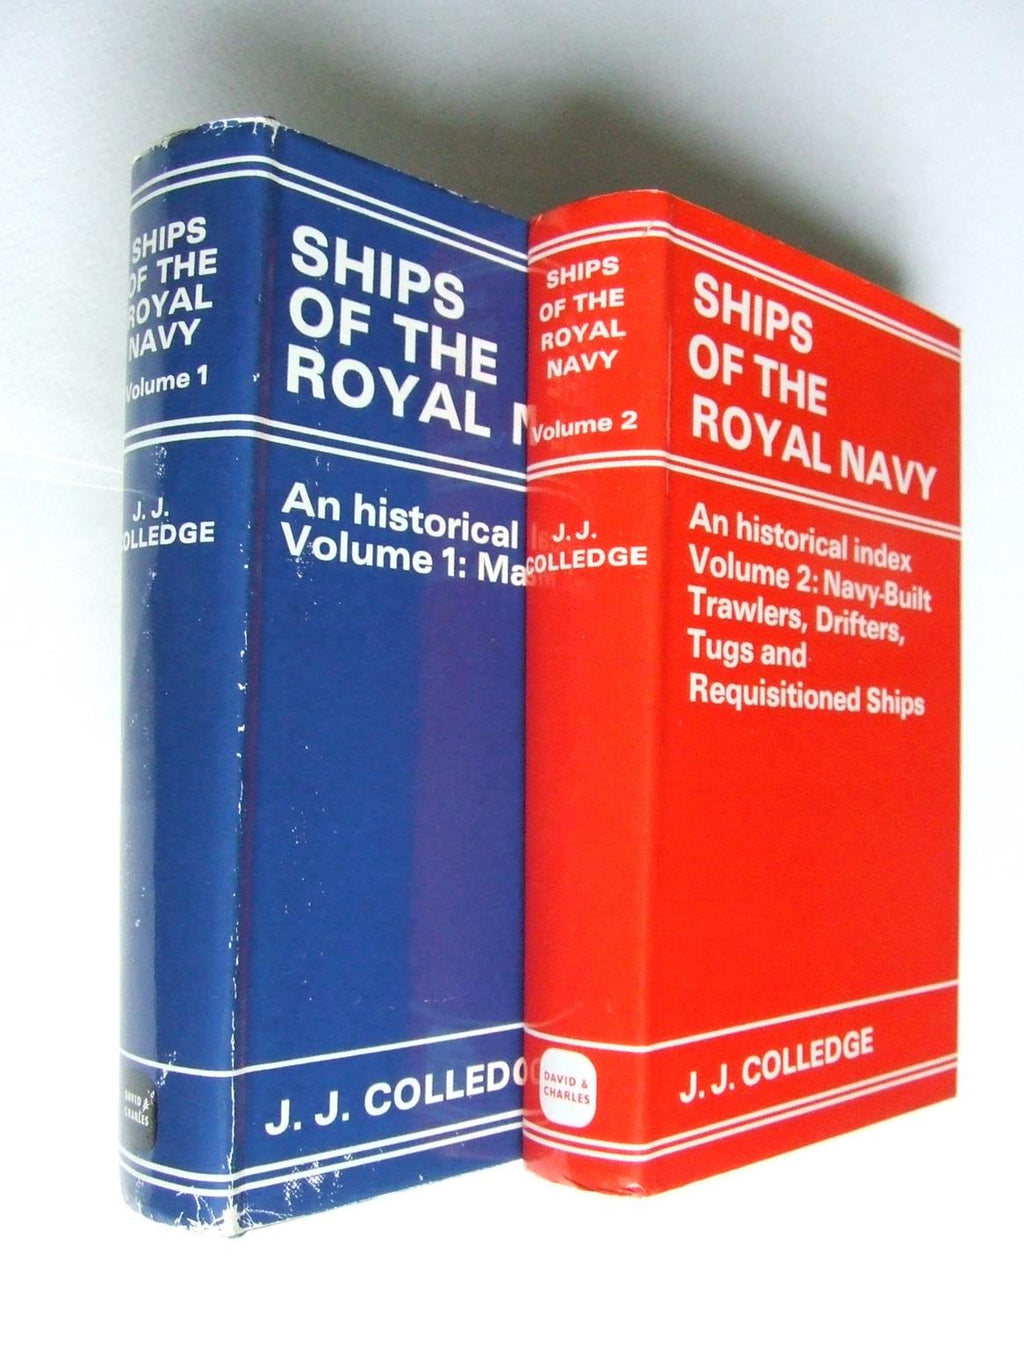 Ships of the Royal Navy, an historical index